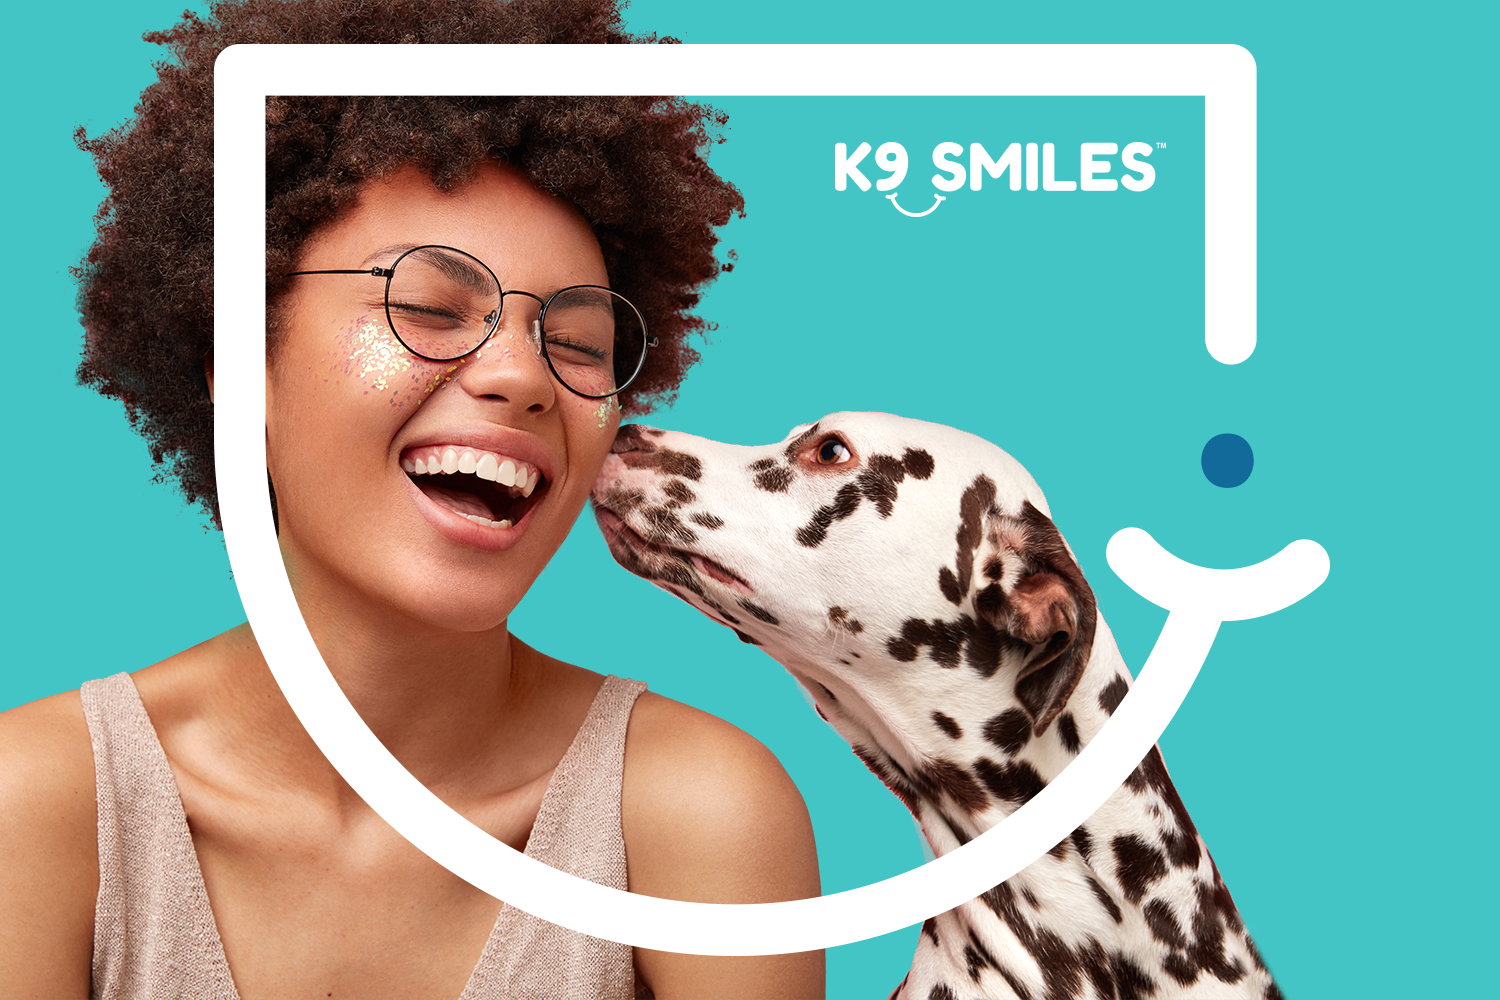 K9-Smiles_header2.png